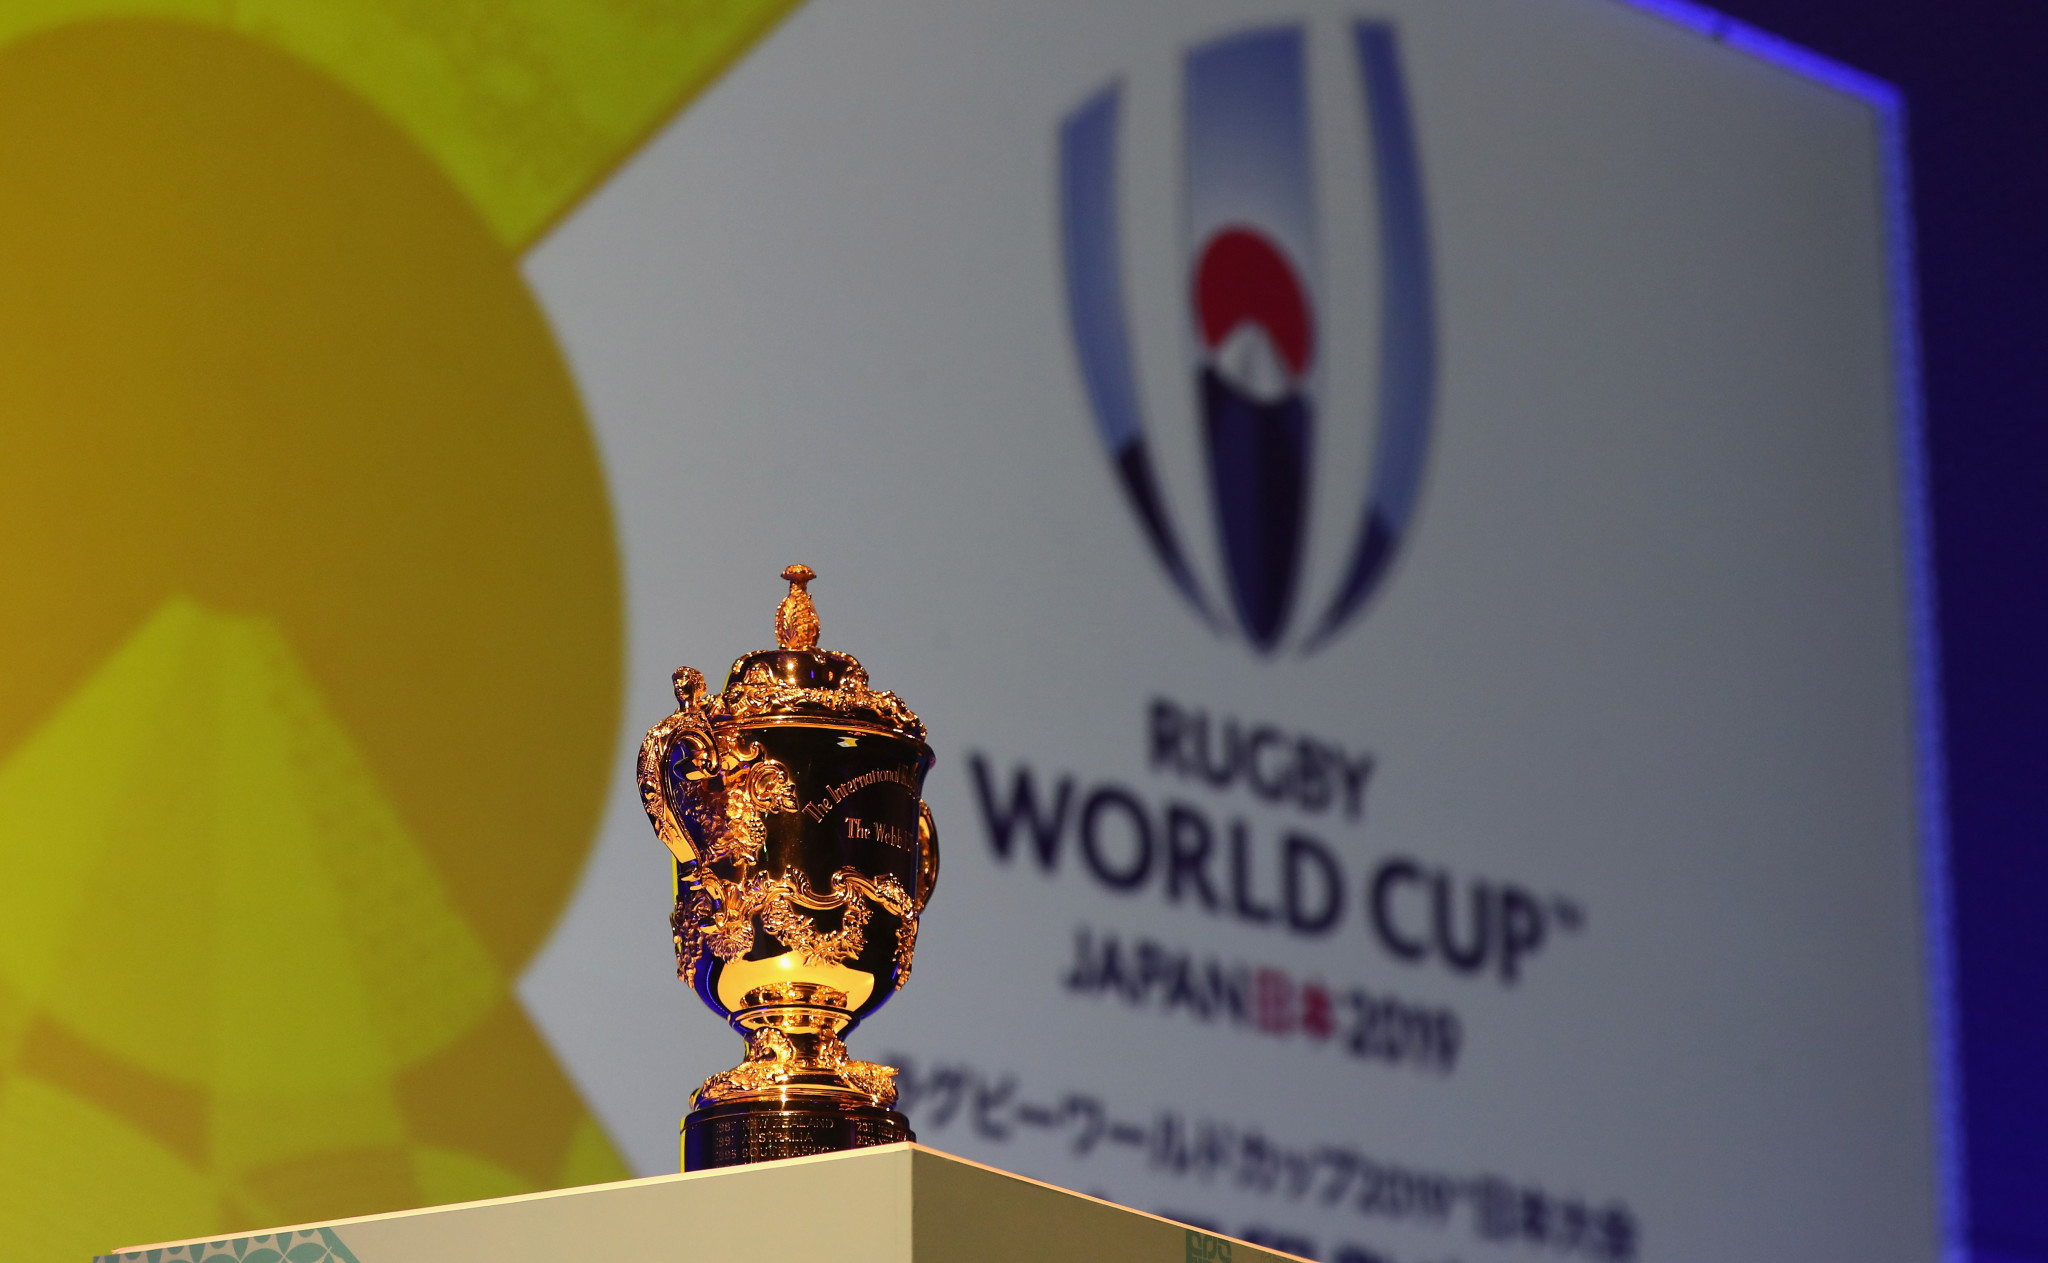 There has been record ticket demand for the Rugby World Cup 2019 which will be held in Japan ©World Rugby